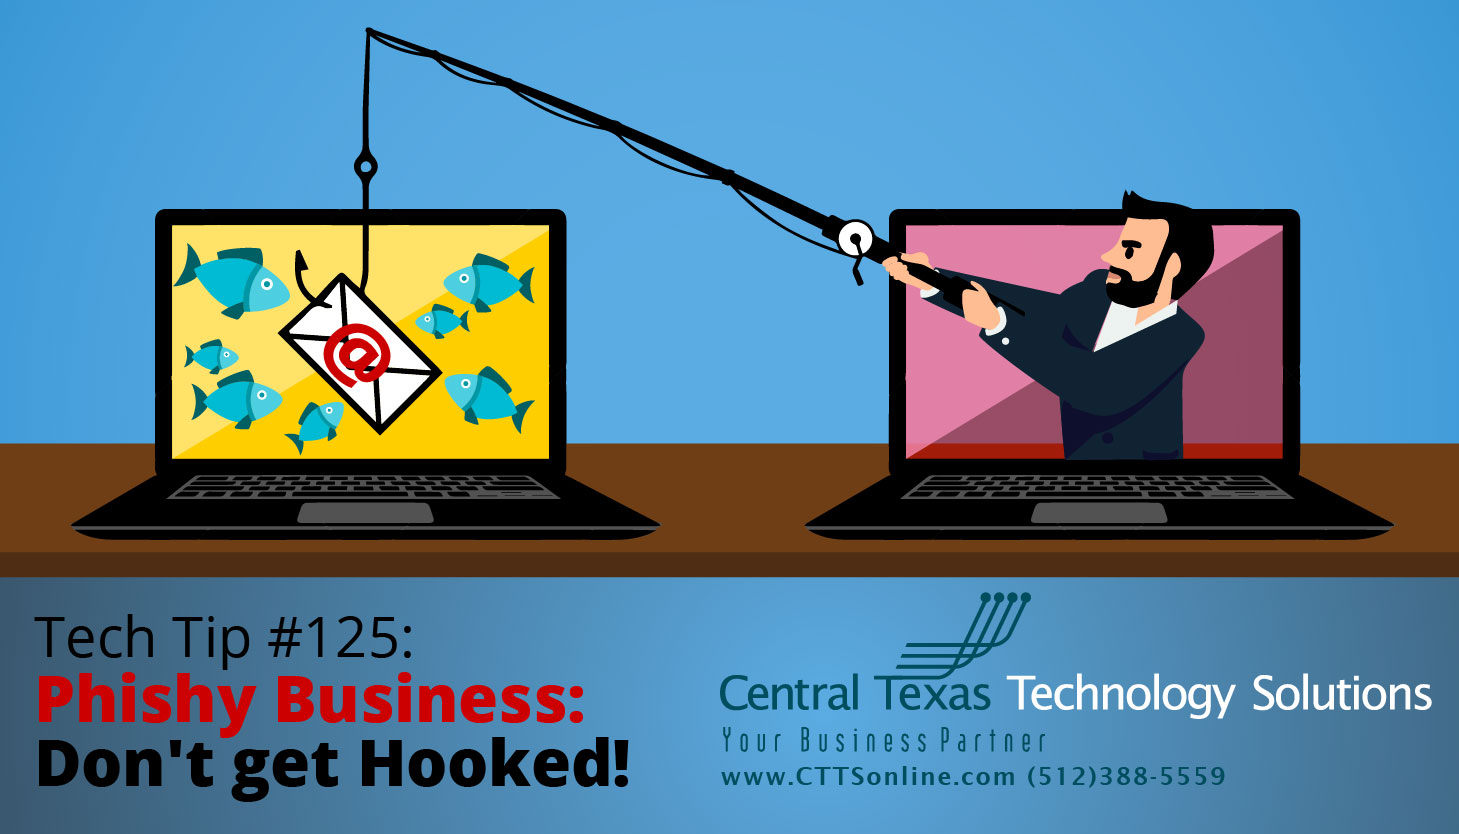 avoid phishing business emails Georgetown TX